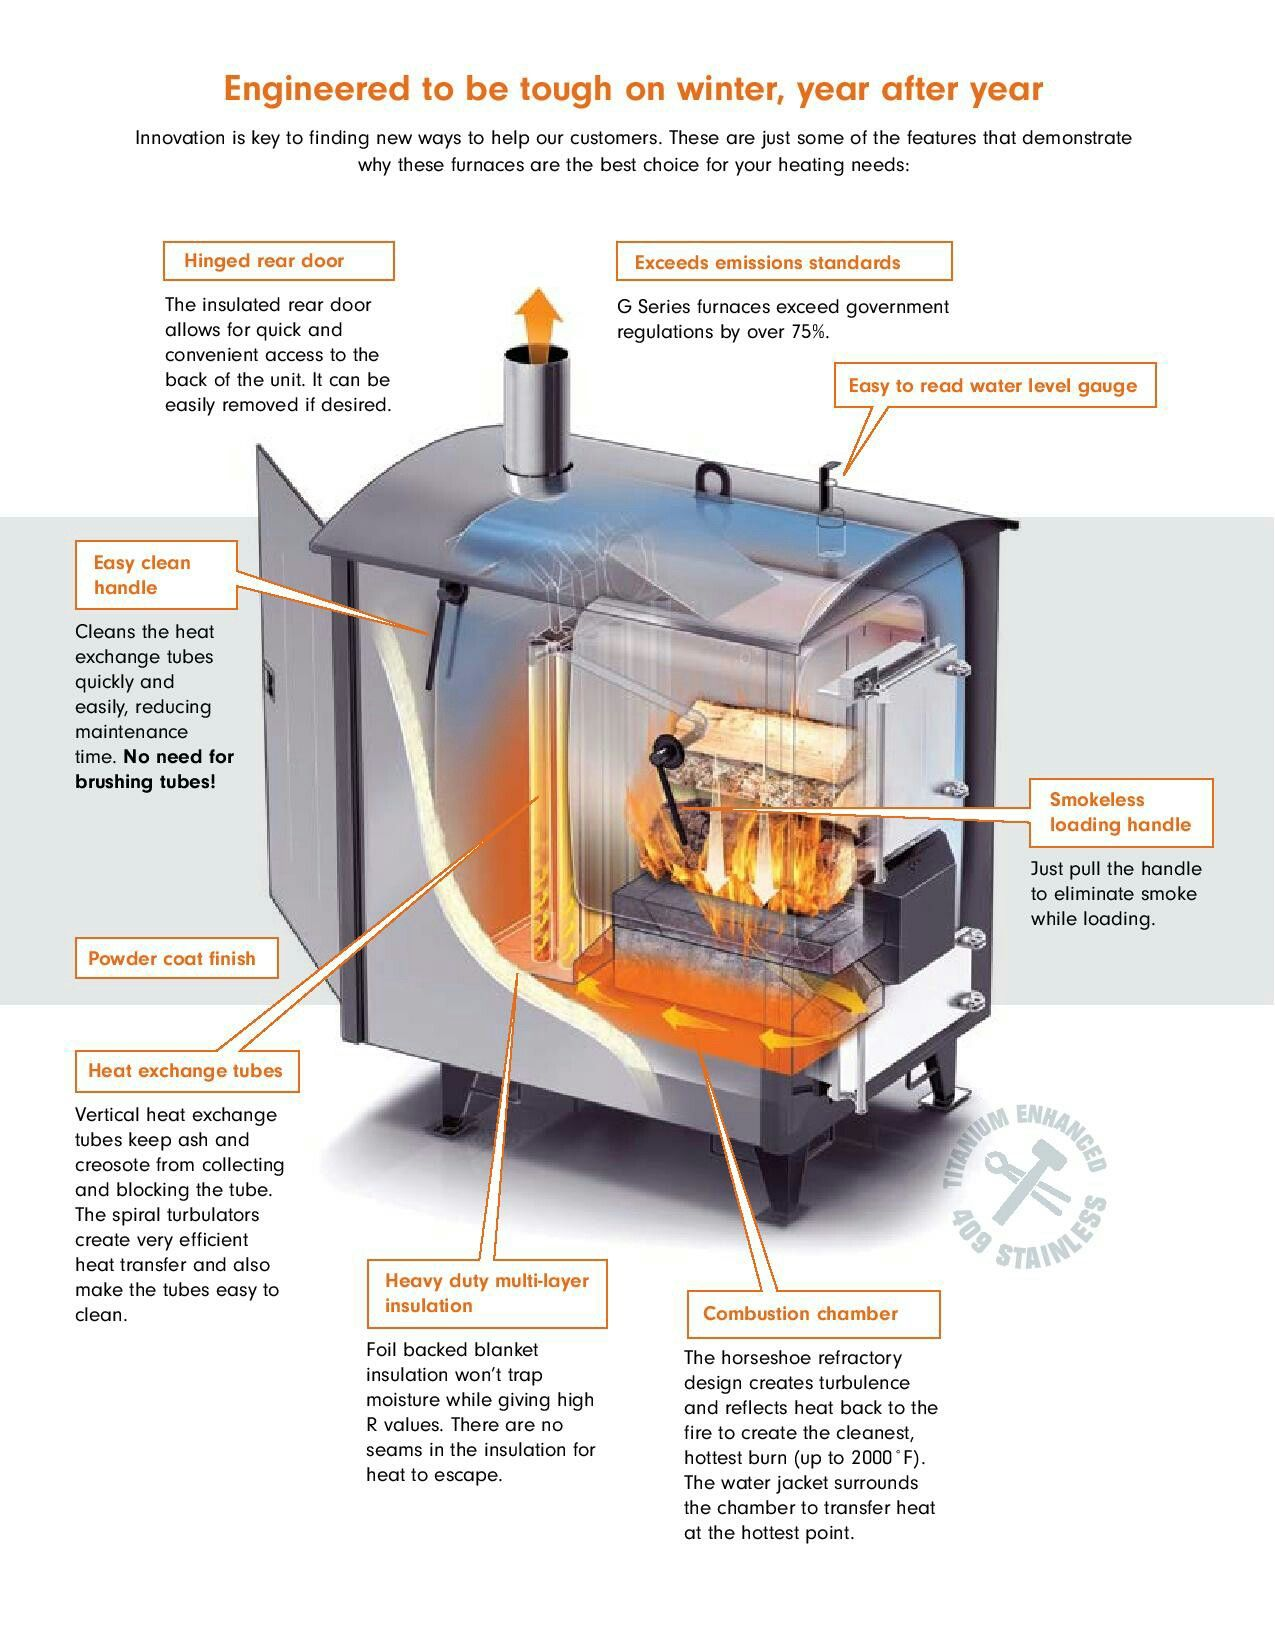 The best outdoor wood boiler design on the market. Simplicity and ...